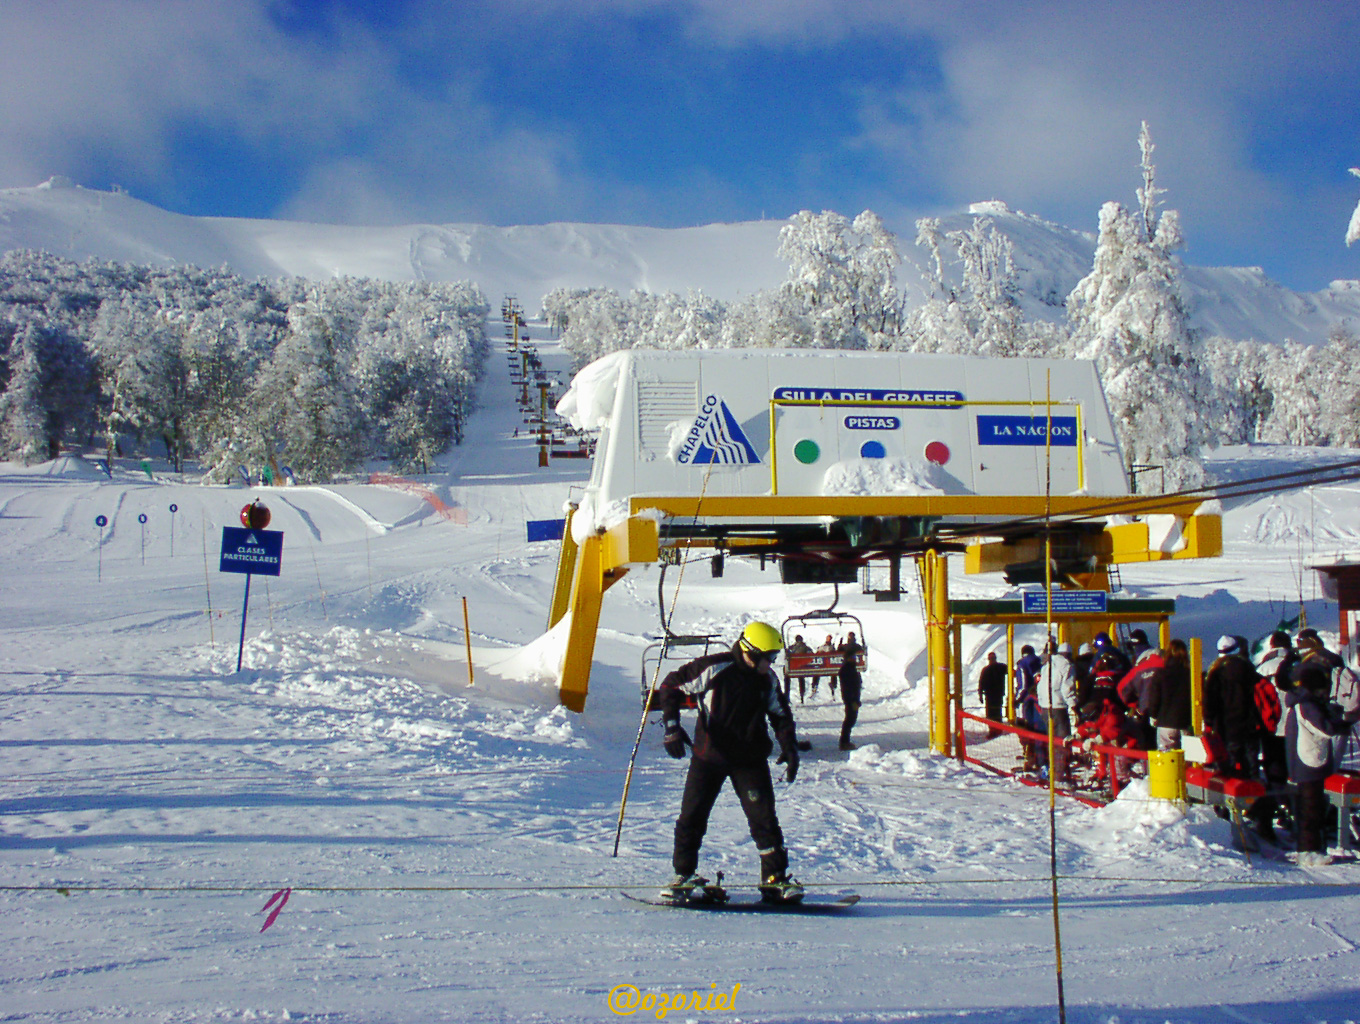 chapelco ski resort argentina 27 - Have Fun at Chapelco Ski Resort - San Martin de Los Andes - Argentina